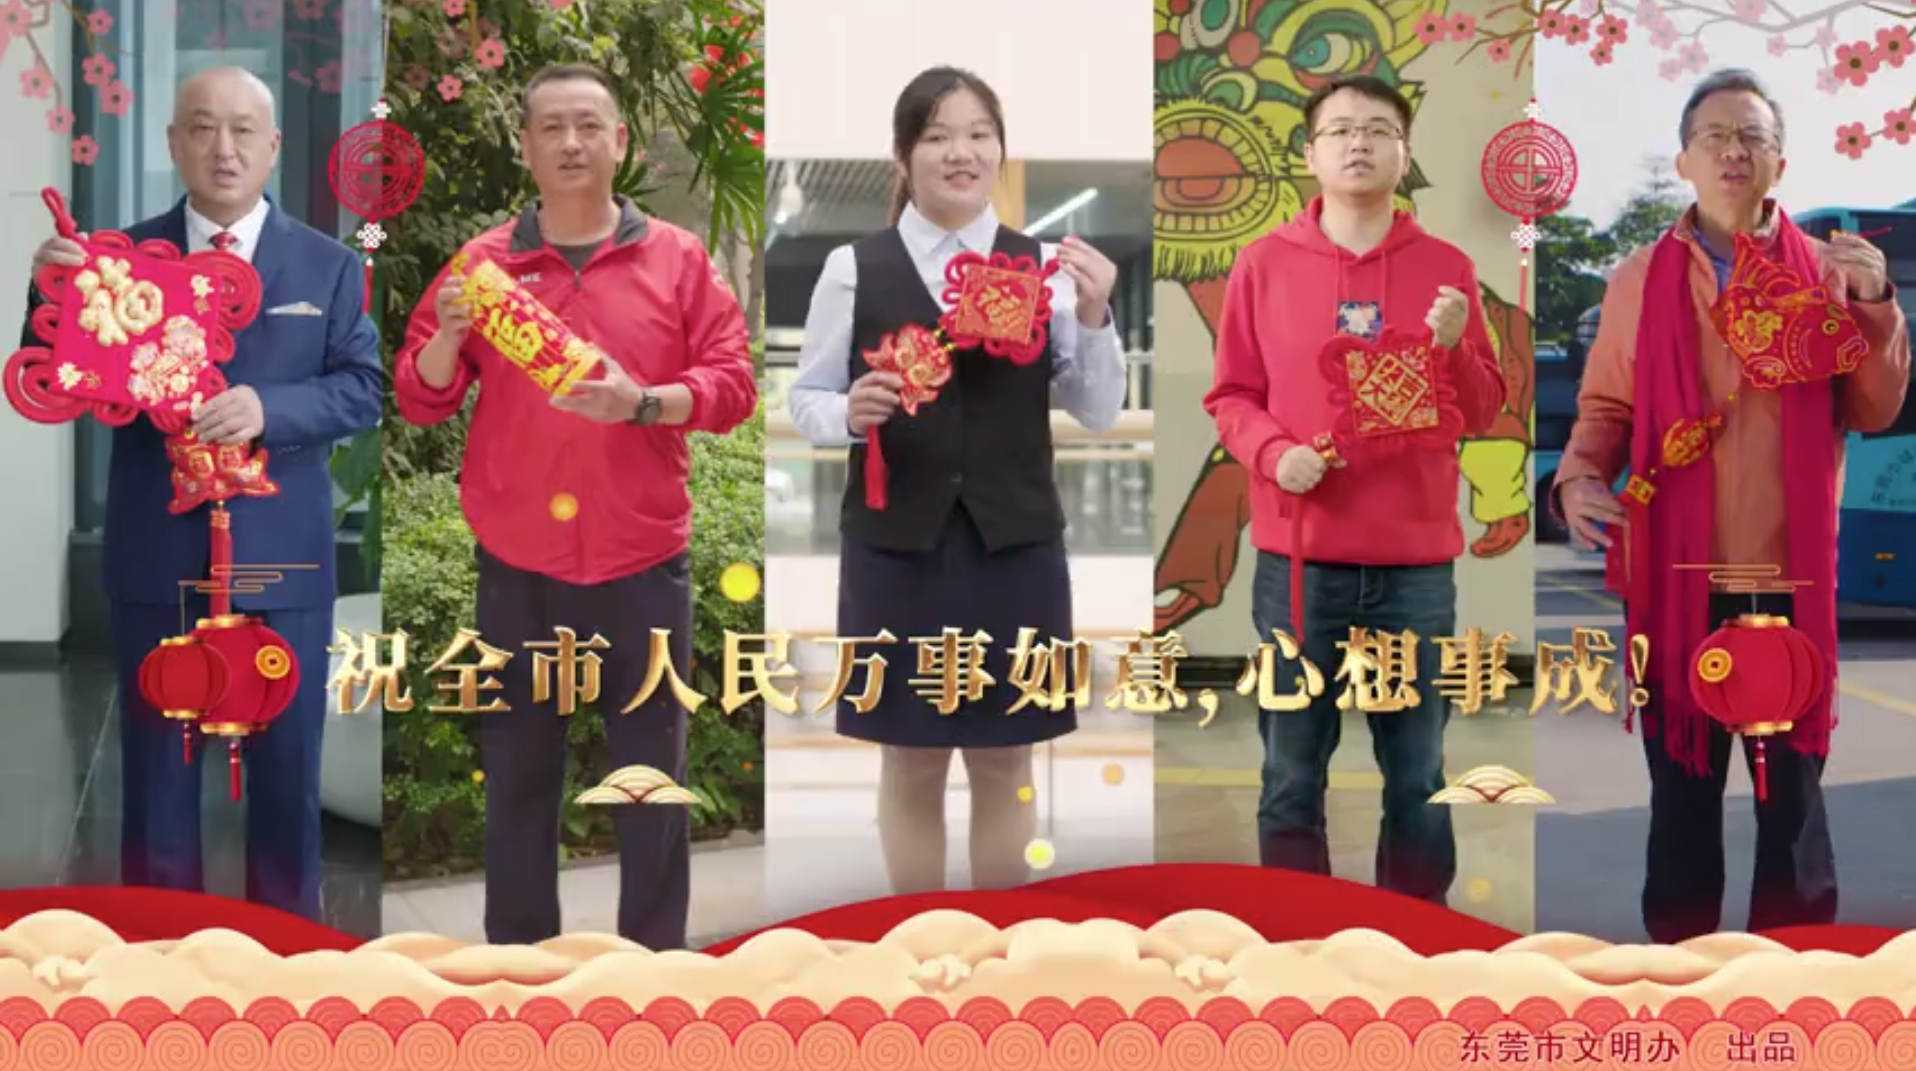 """""""東(dong)莞(guan)好人shu)焙嗇旯 娑唐  you)善東(dong)莞(guan)篇"""